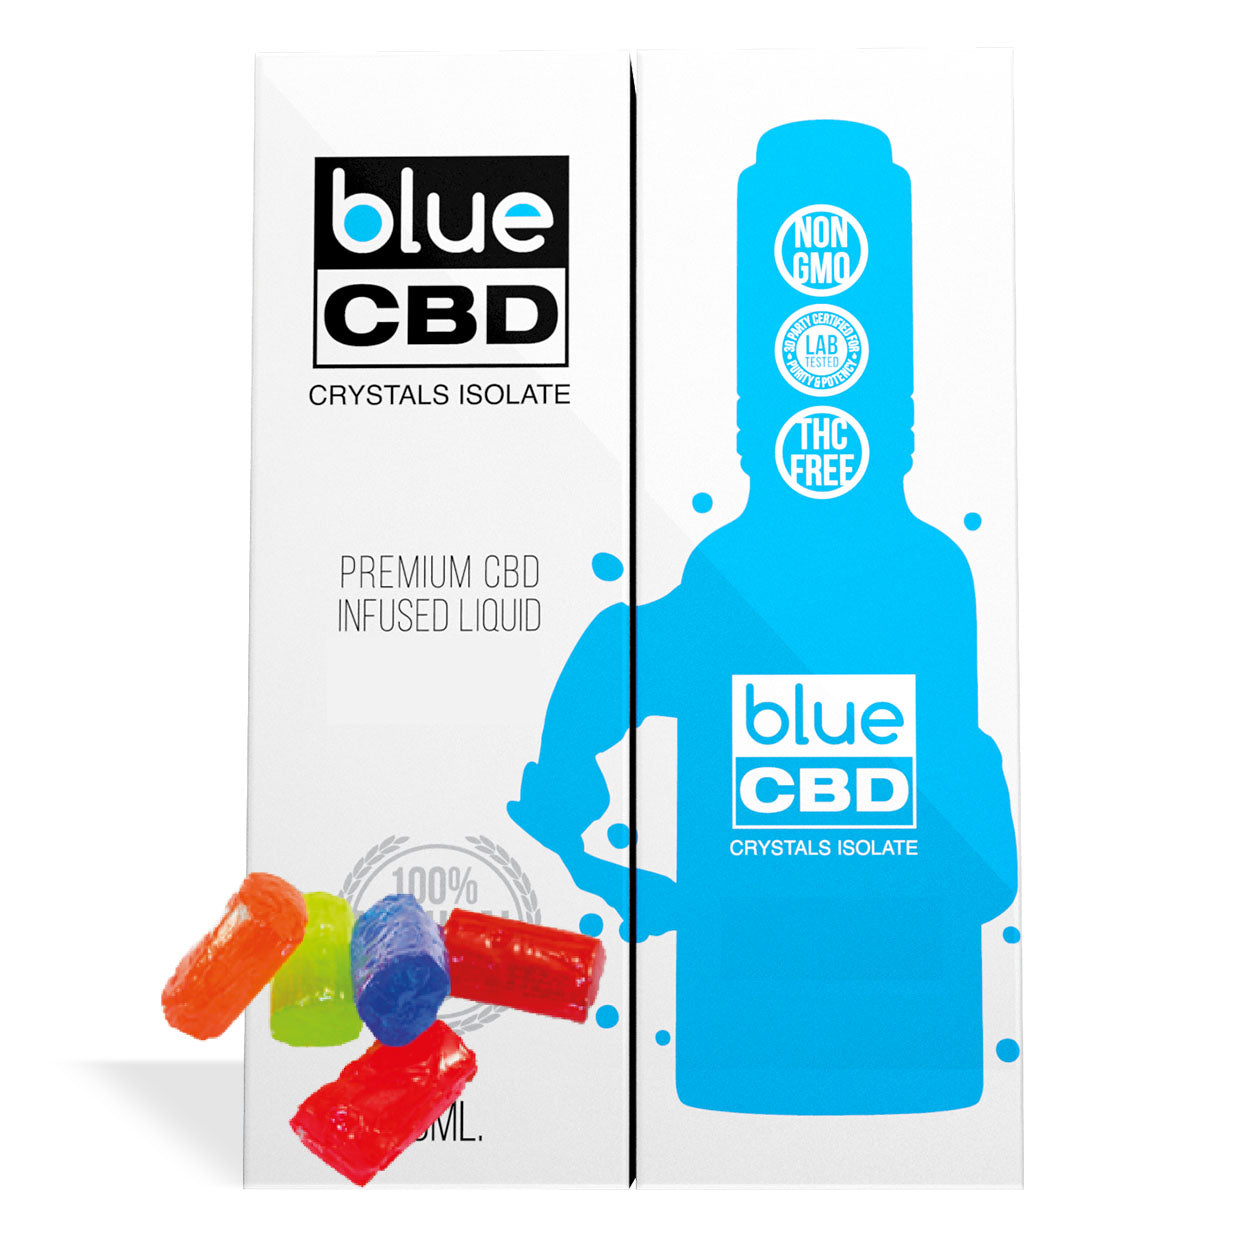 Hard Candy Flavor Blue CBD Crystal Isolate - My CBD Mall